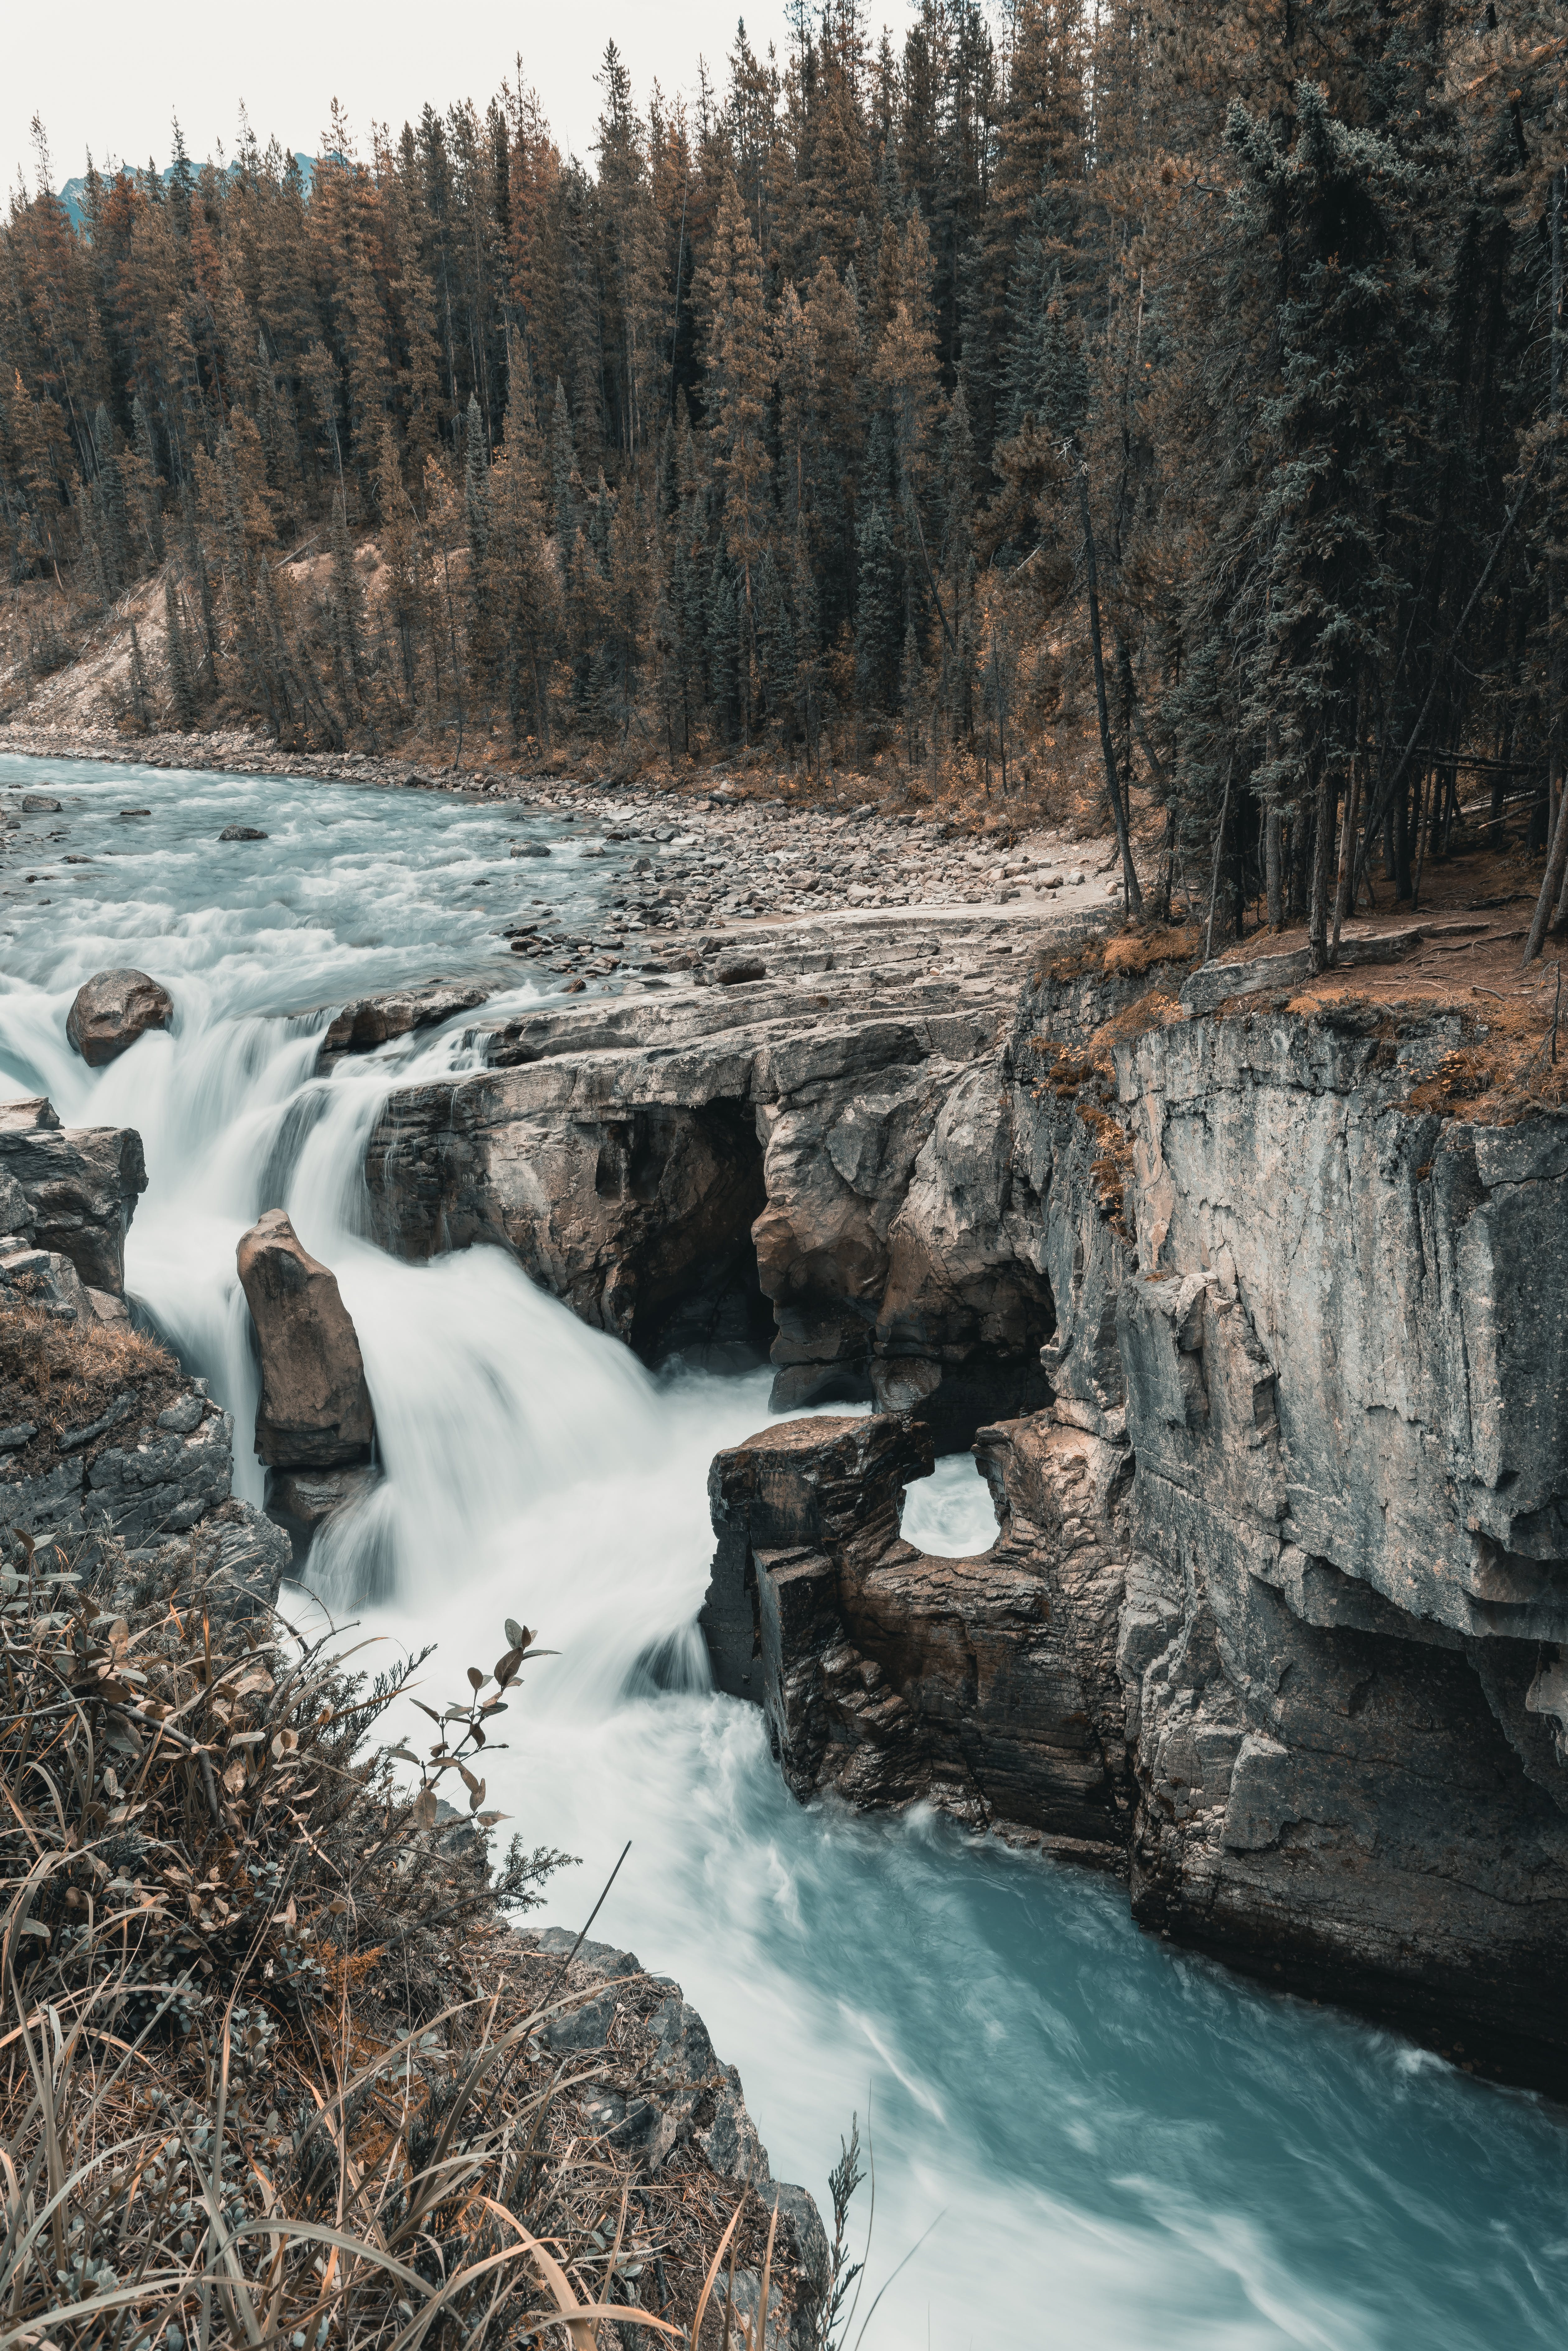 Time Lapse Photo of Flowing River